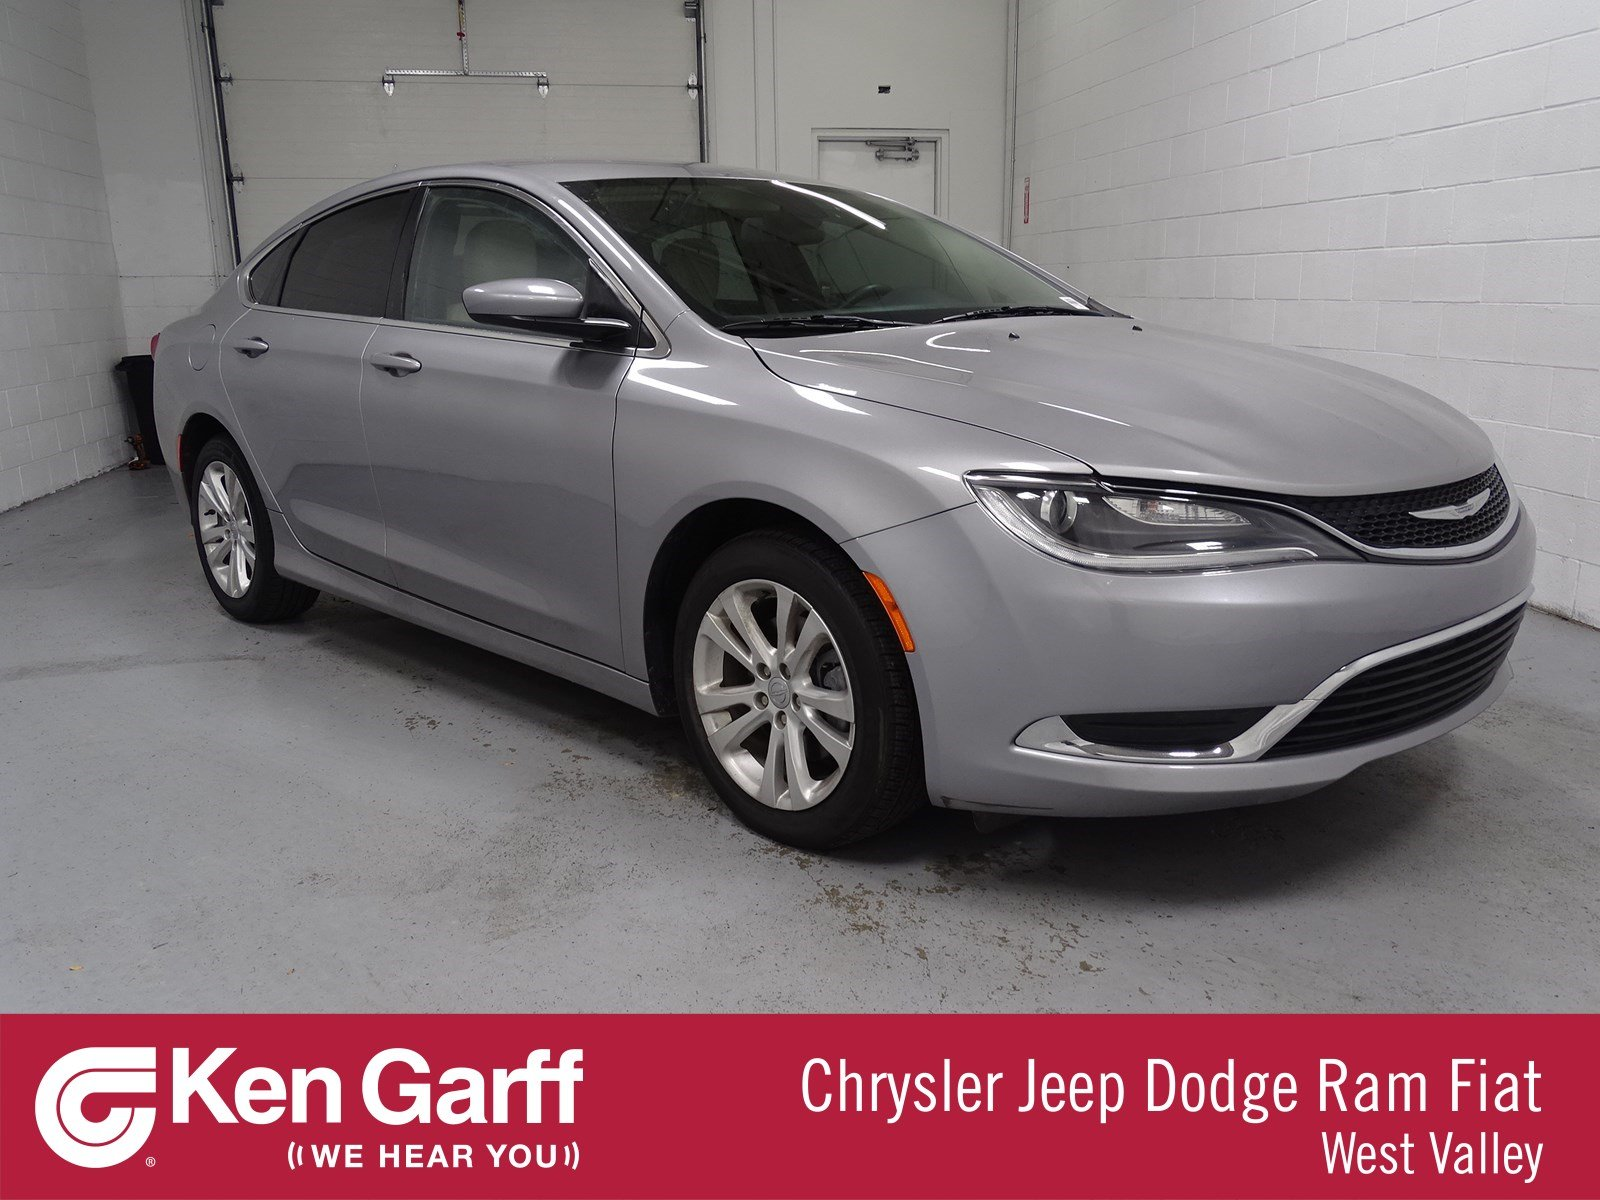 Certified Pre Owned 2016 Chrysler 200 Limited 4dr Car in WEST VALLEY